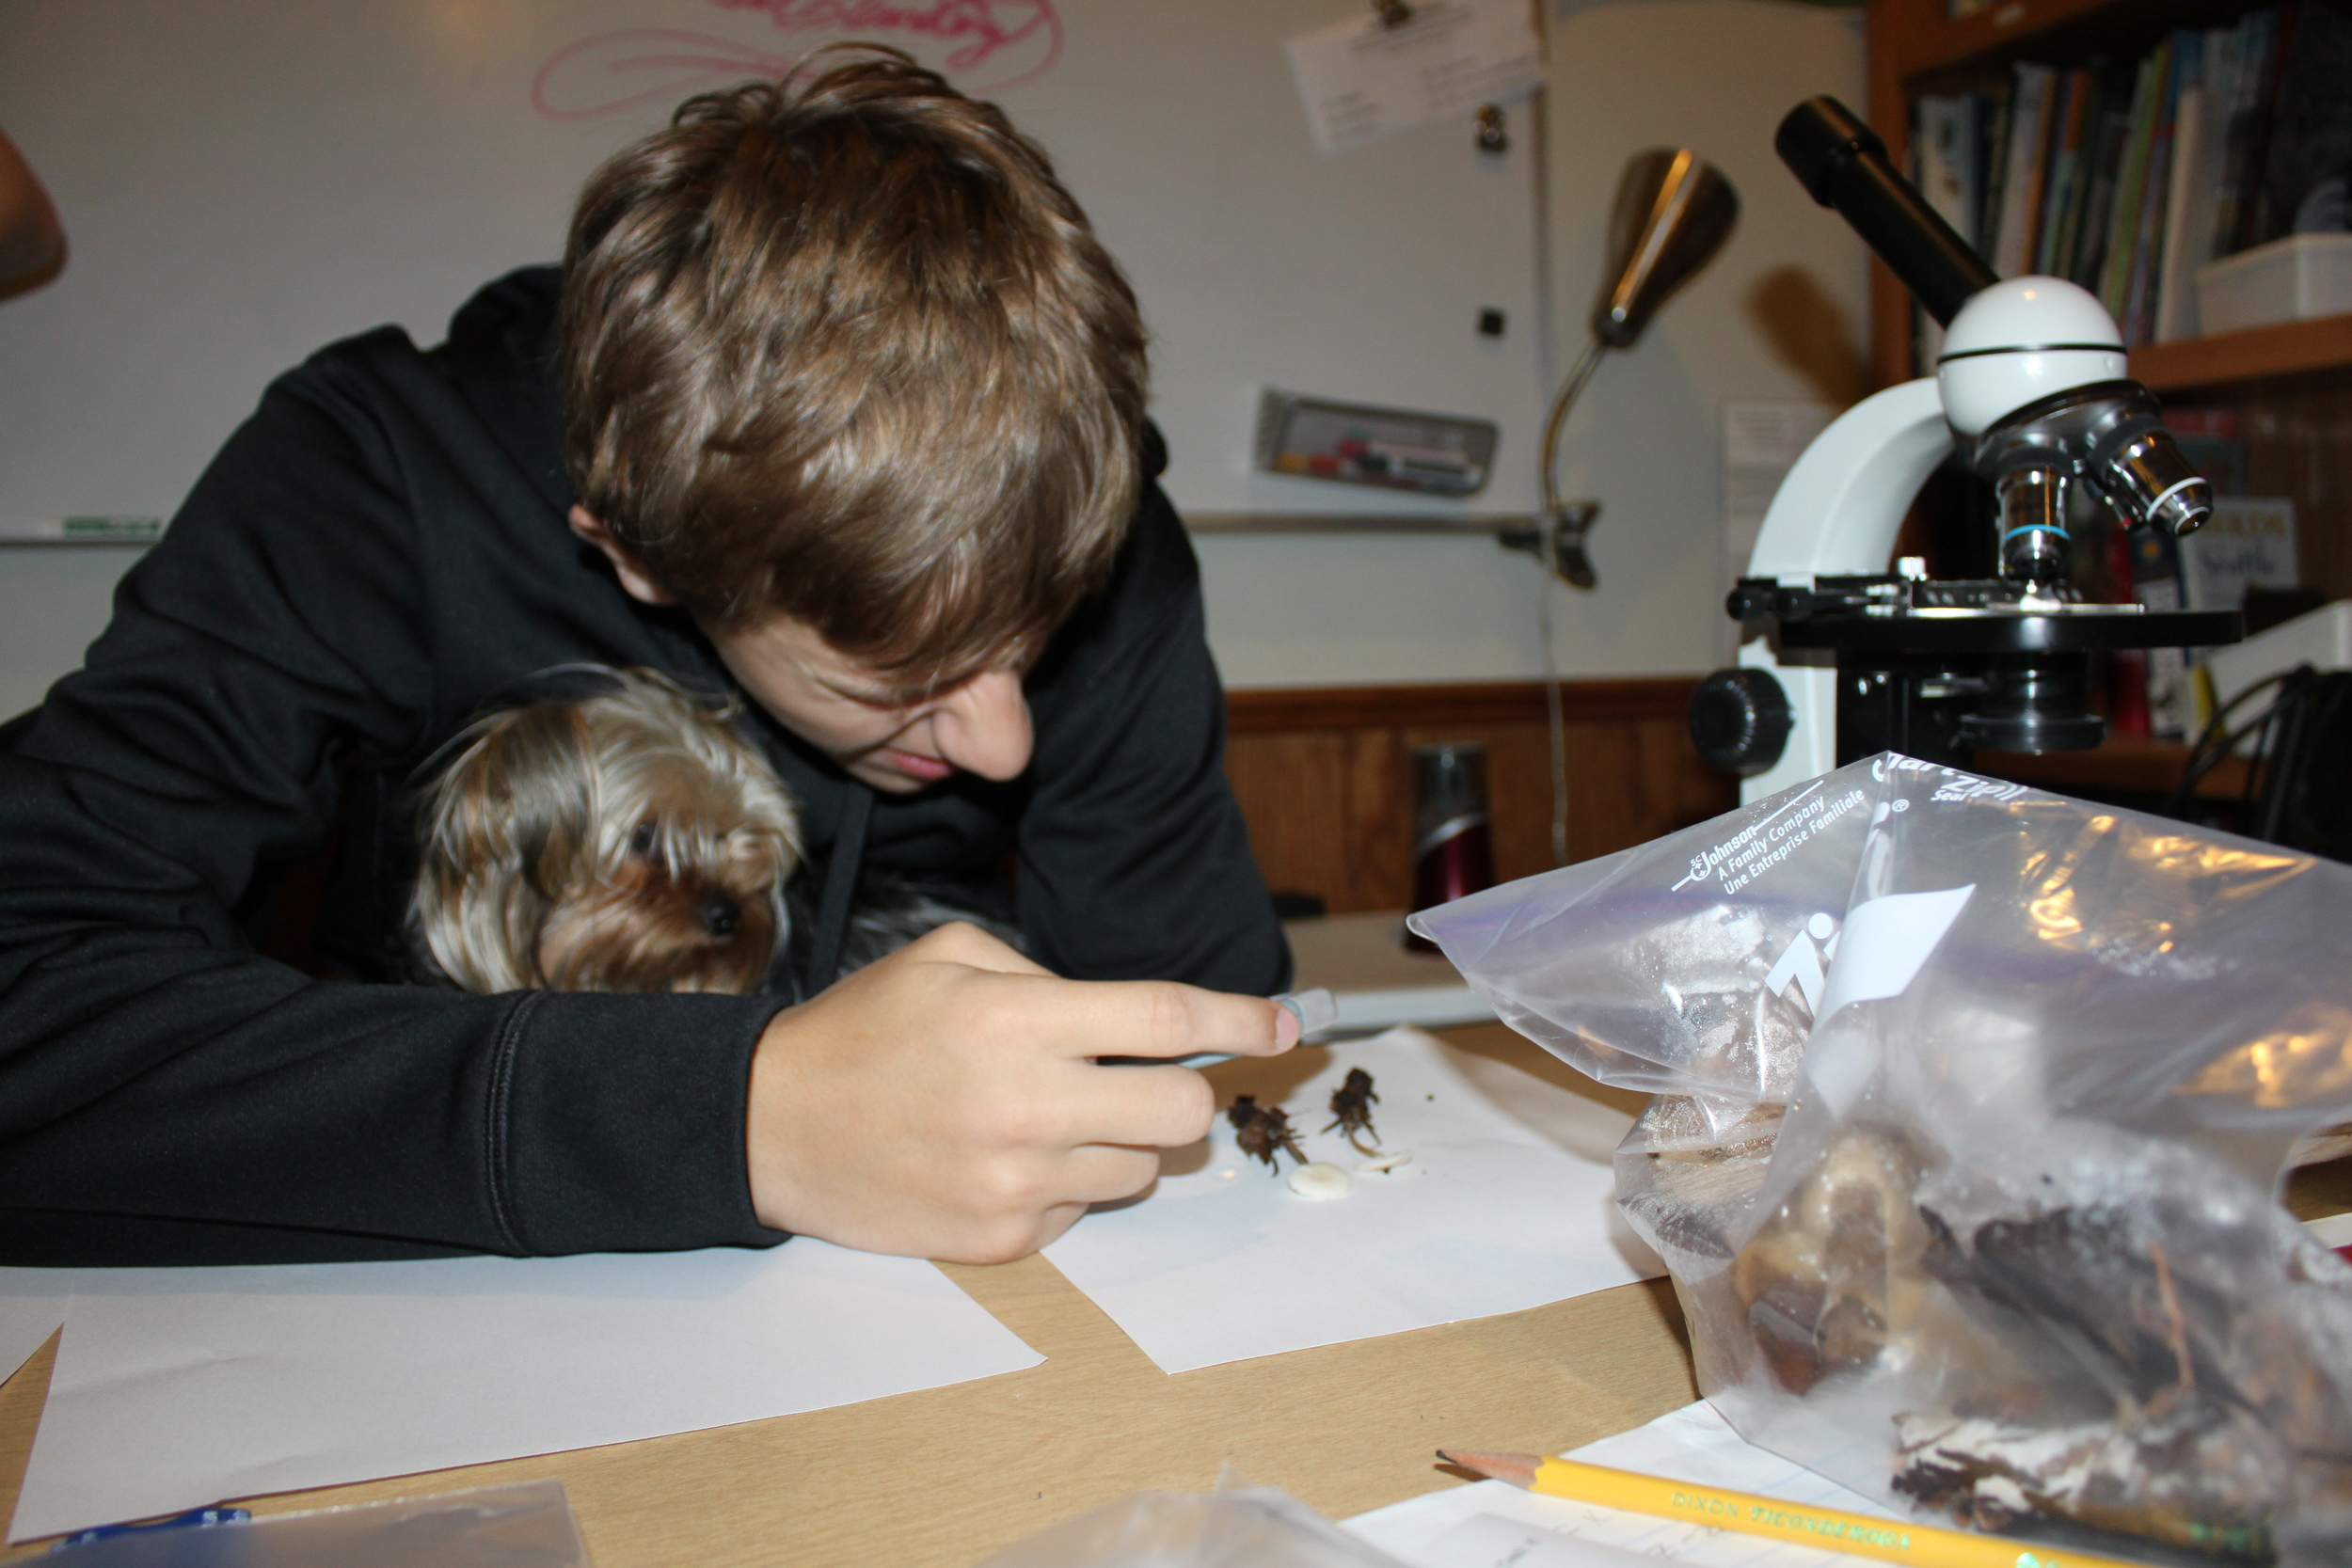 Roxy helping Chris look at muschrooms